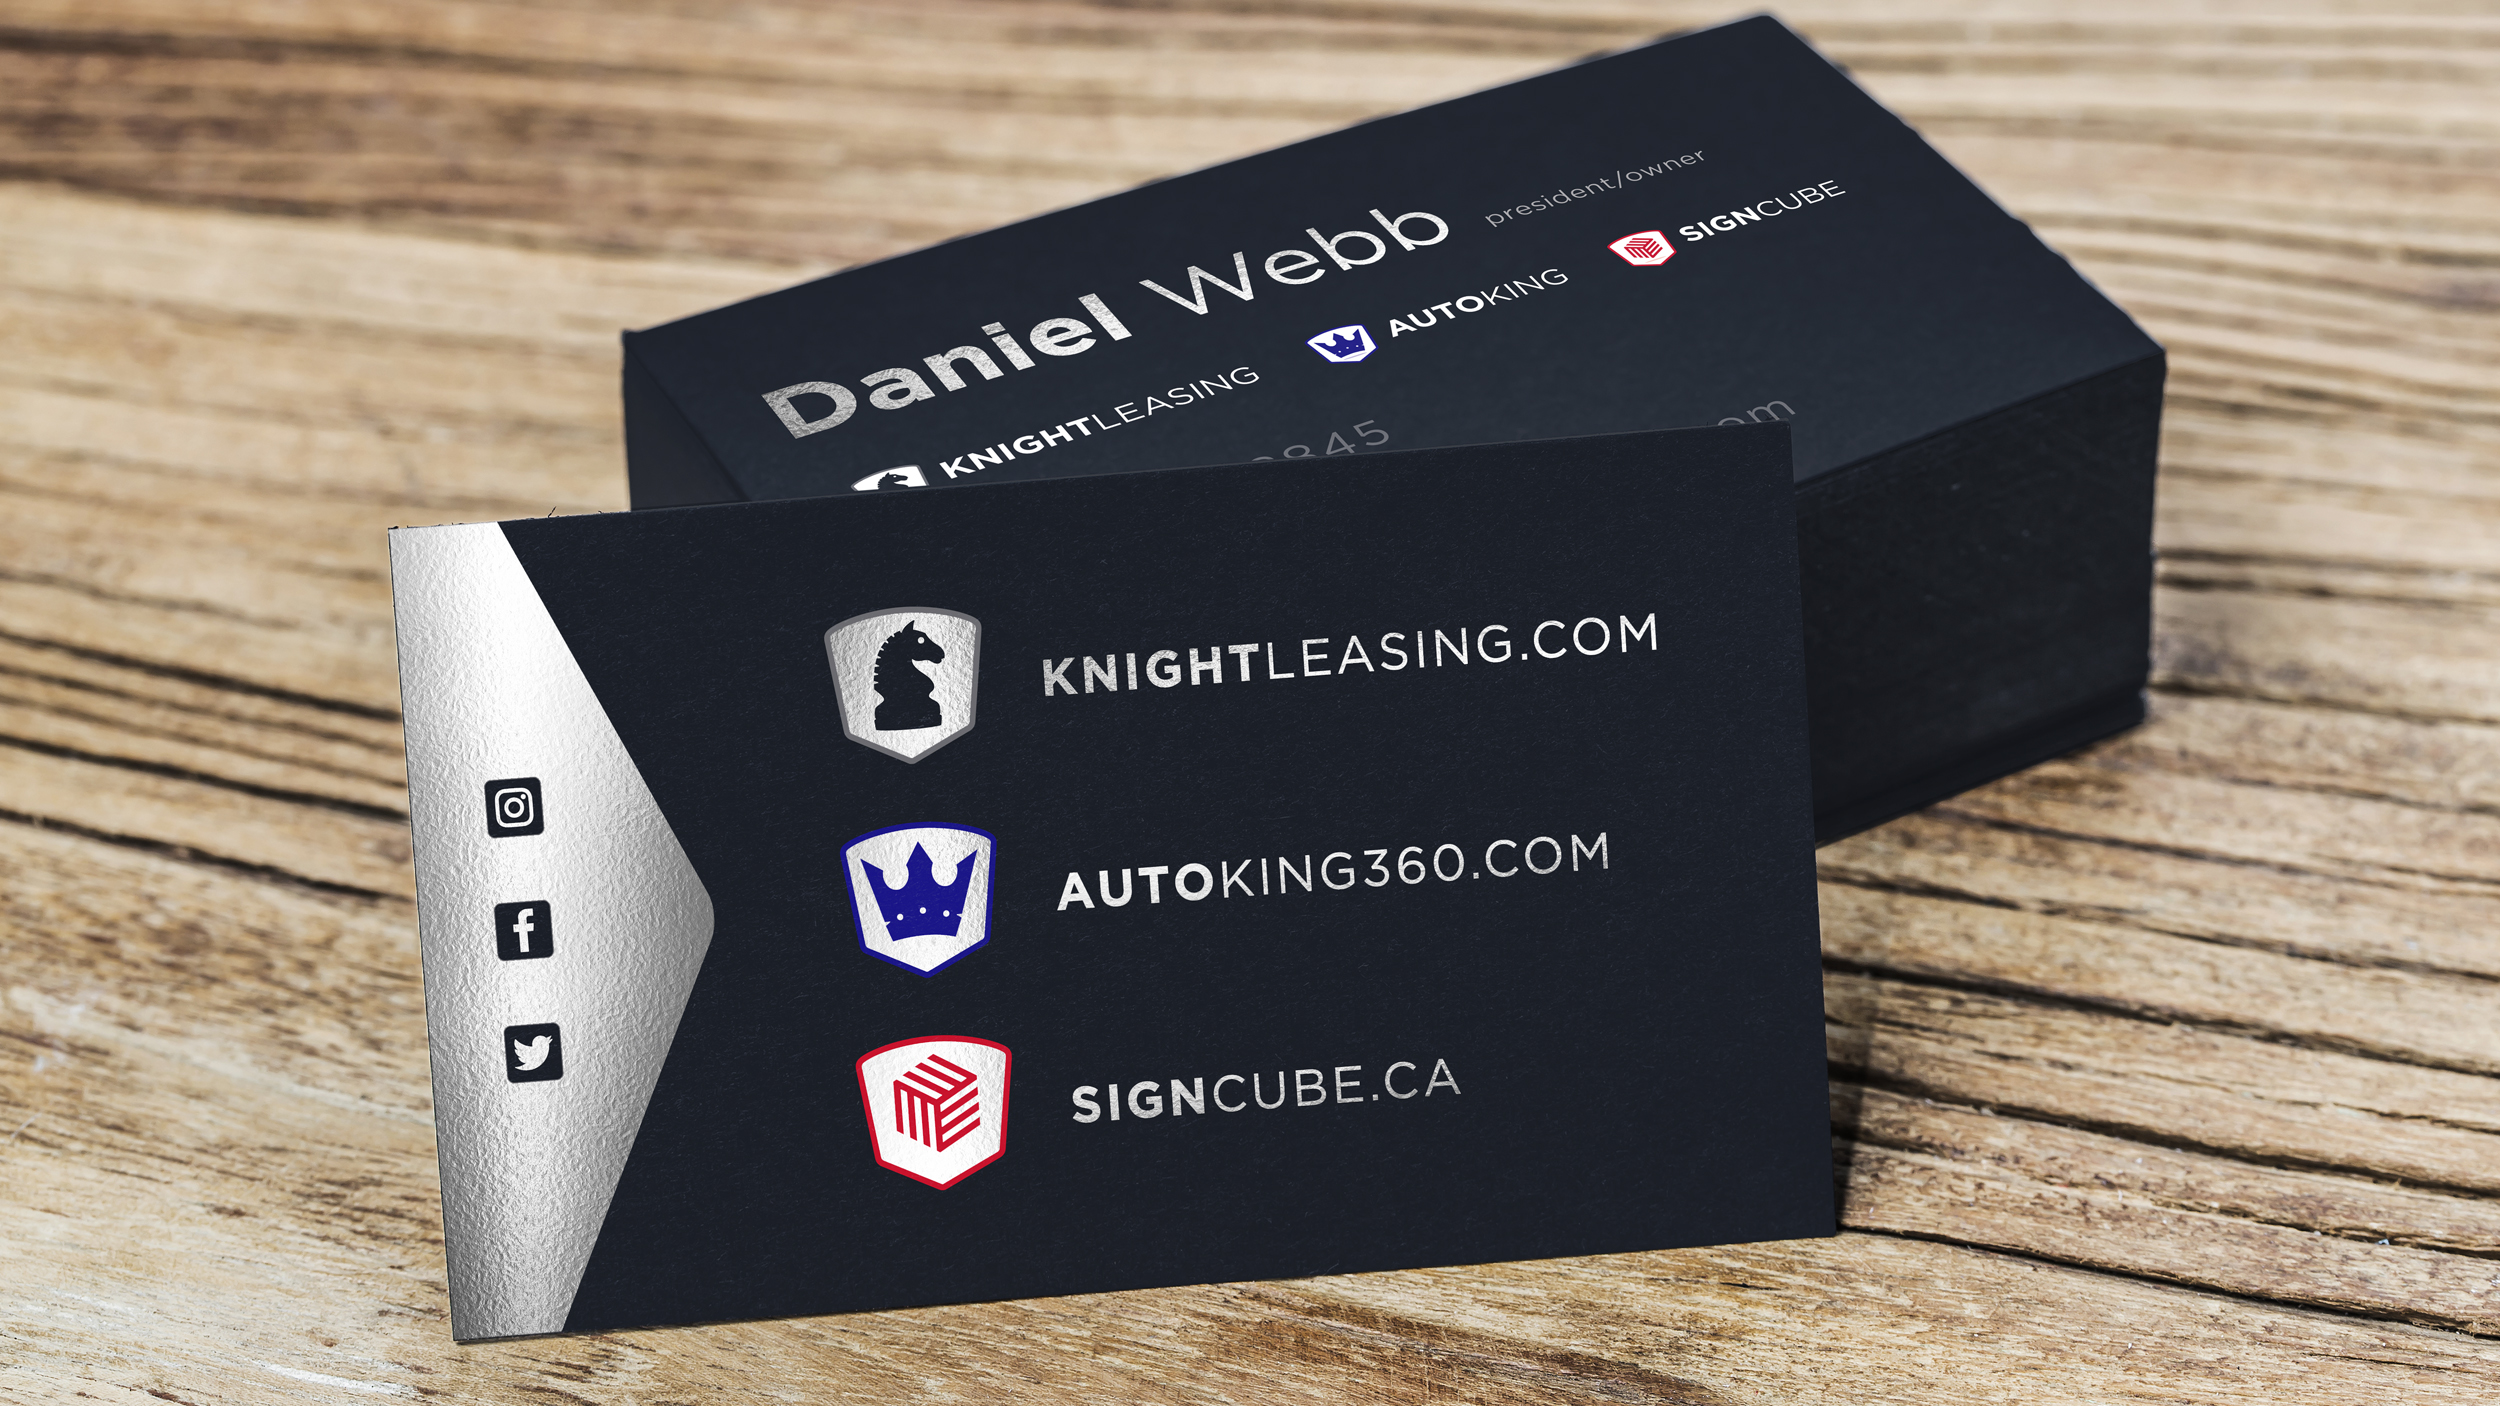 KNIGHT LEASING  Business Card  Copyright © Afro Boy Productions. All rights reserved.